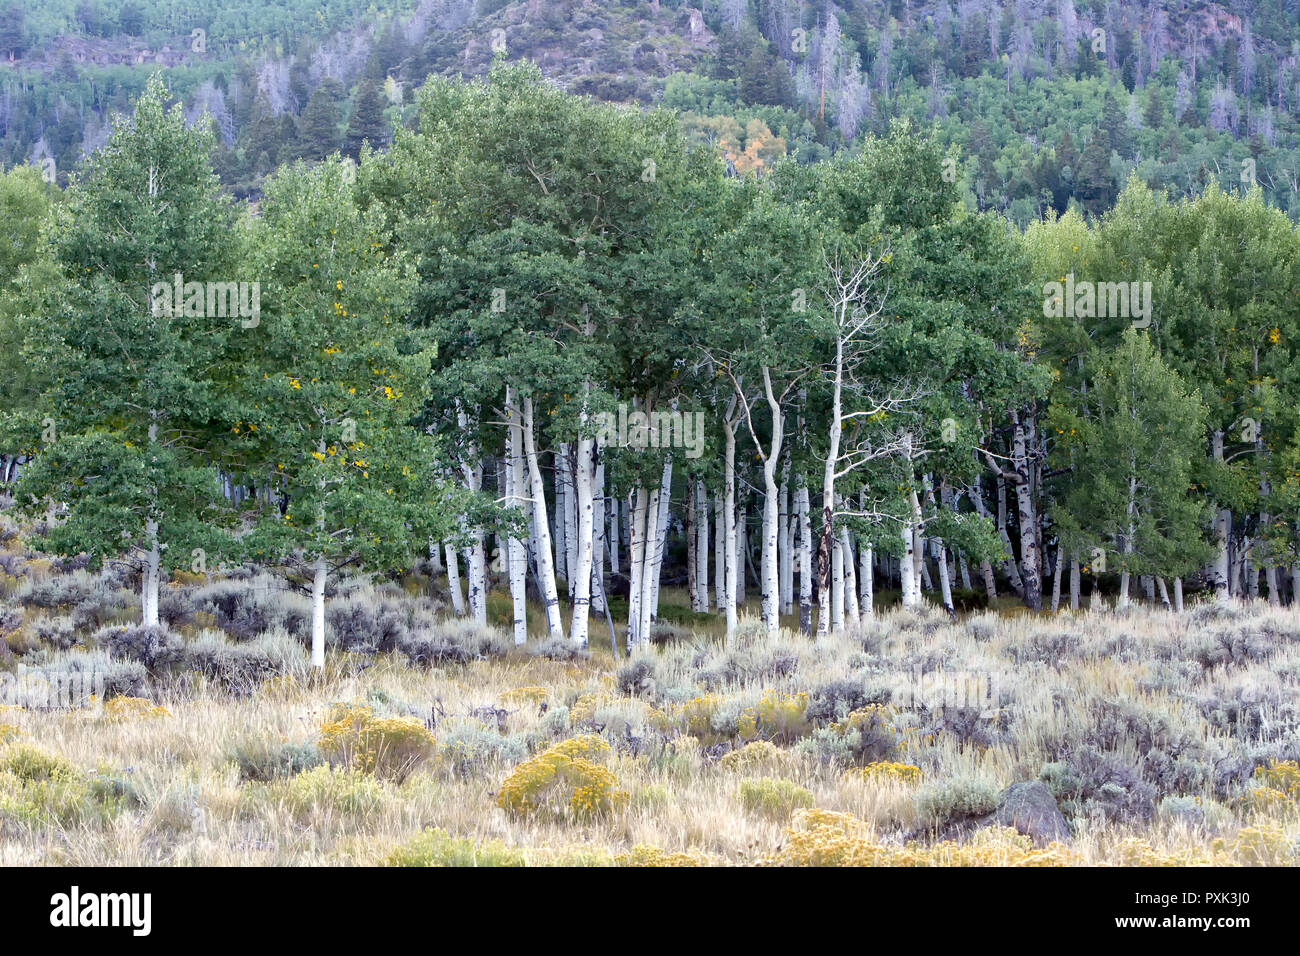 Quaking Aspen Grove 'Pando Clone' , also known as Trembling Giant, Clonal colony of an individual male quaking aspen. - Stock Image